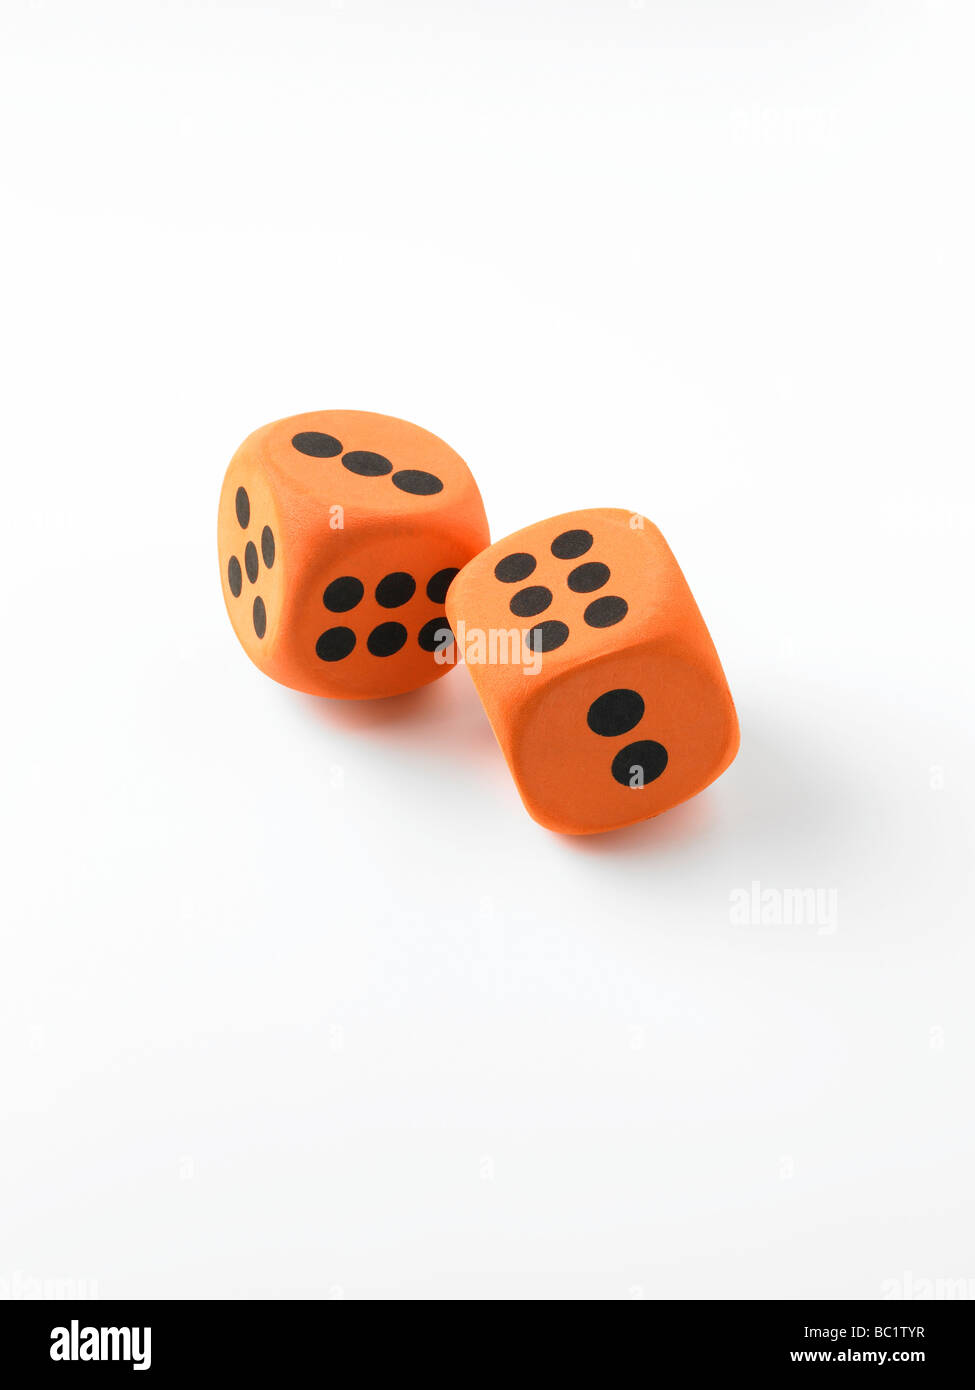 orange dice on white - Stock Image